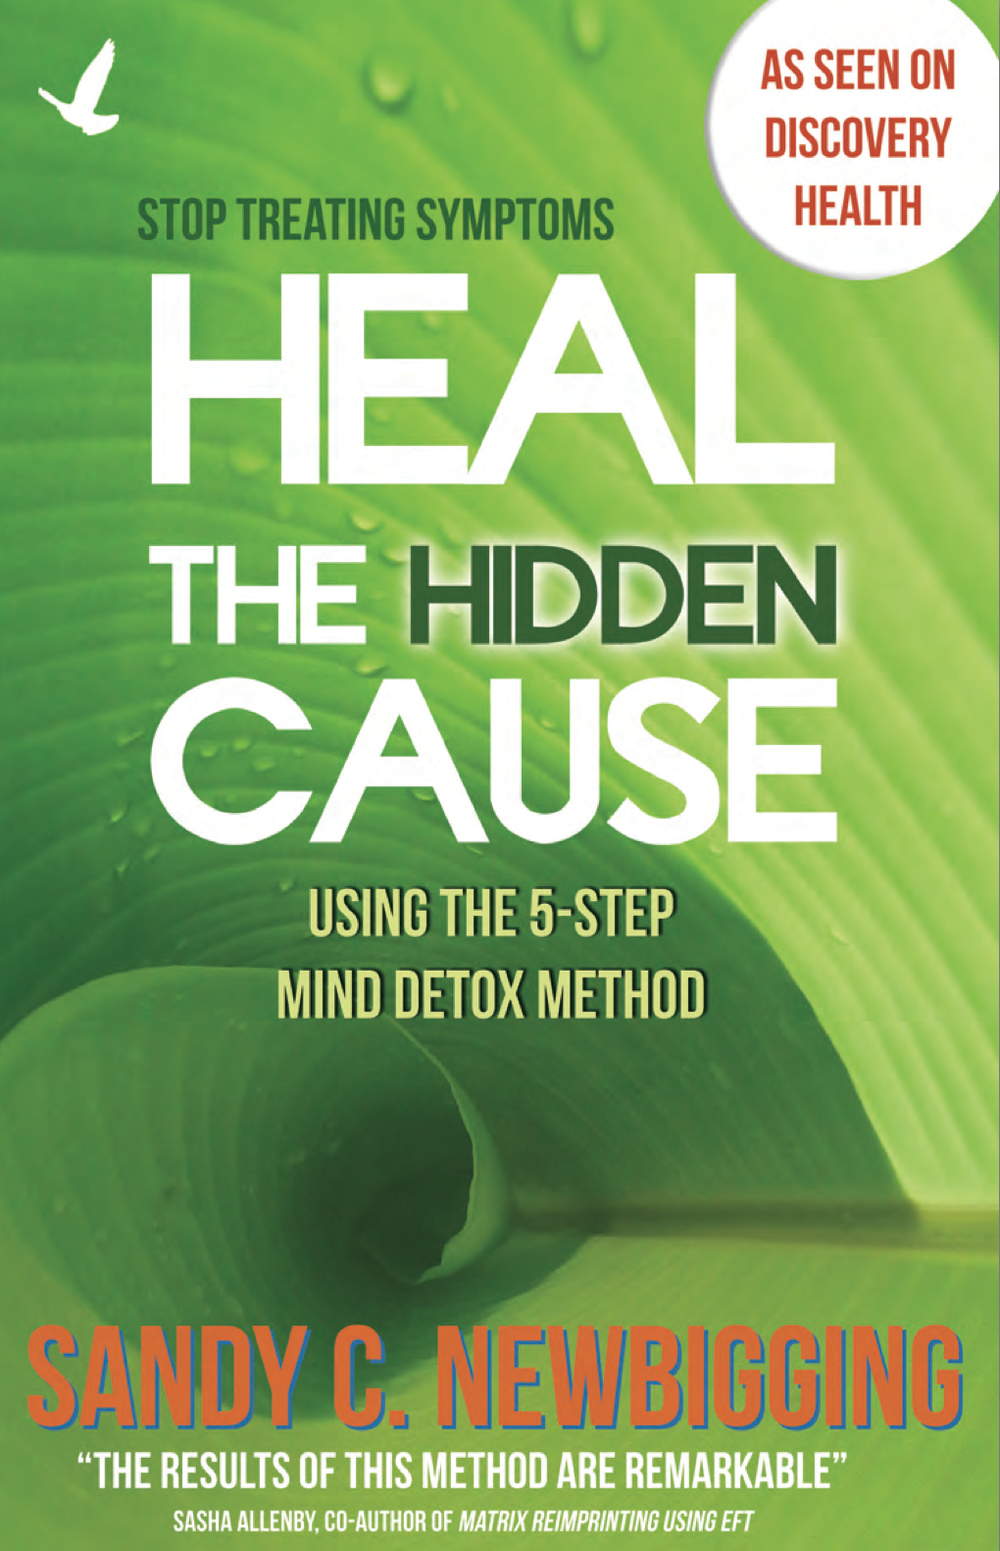 Final Heal the Hidden Cause Front Cover 2013.jpg